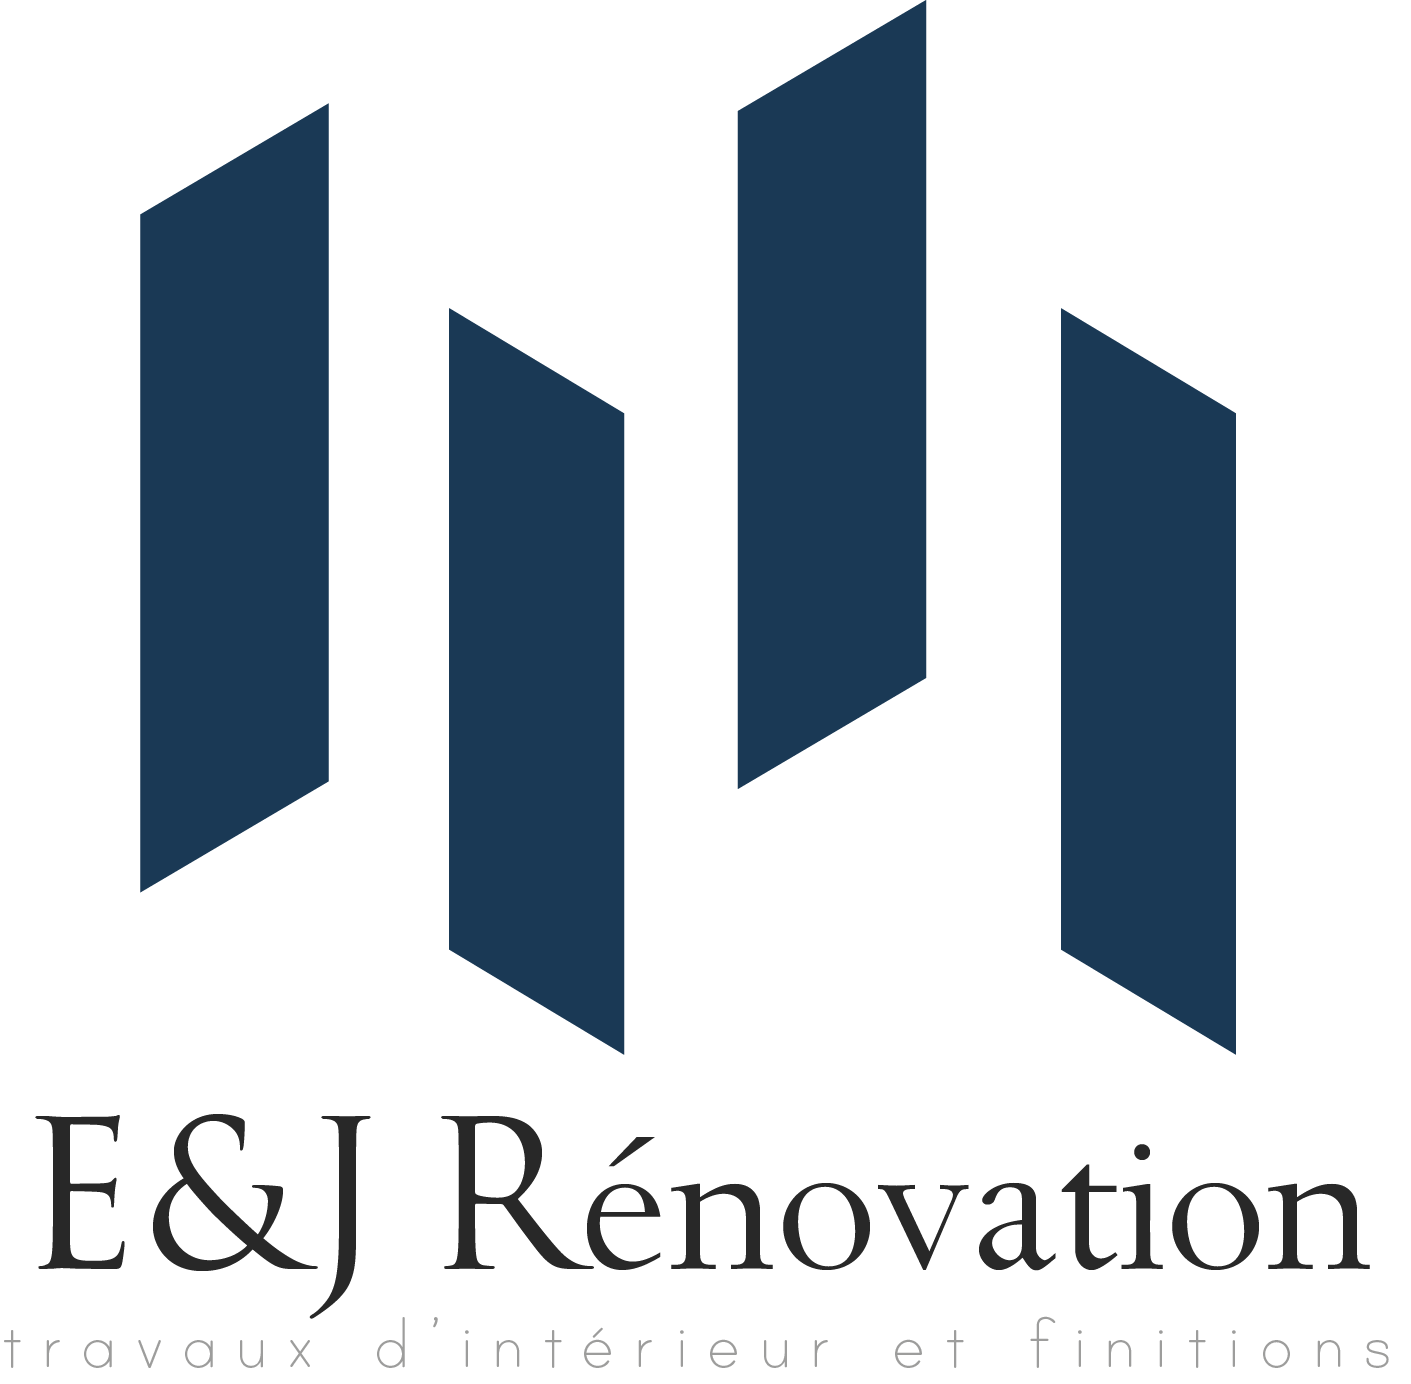 E&J Rénovation